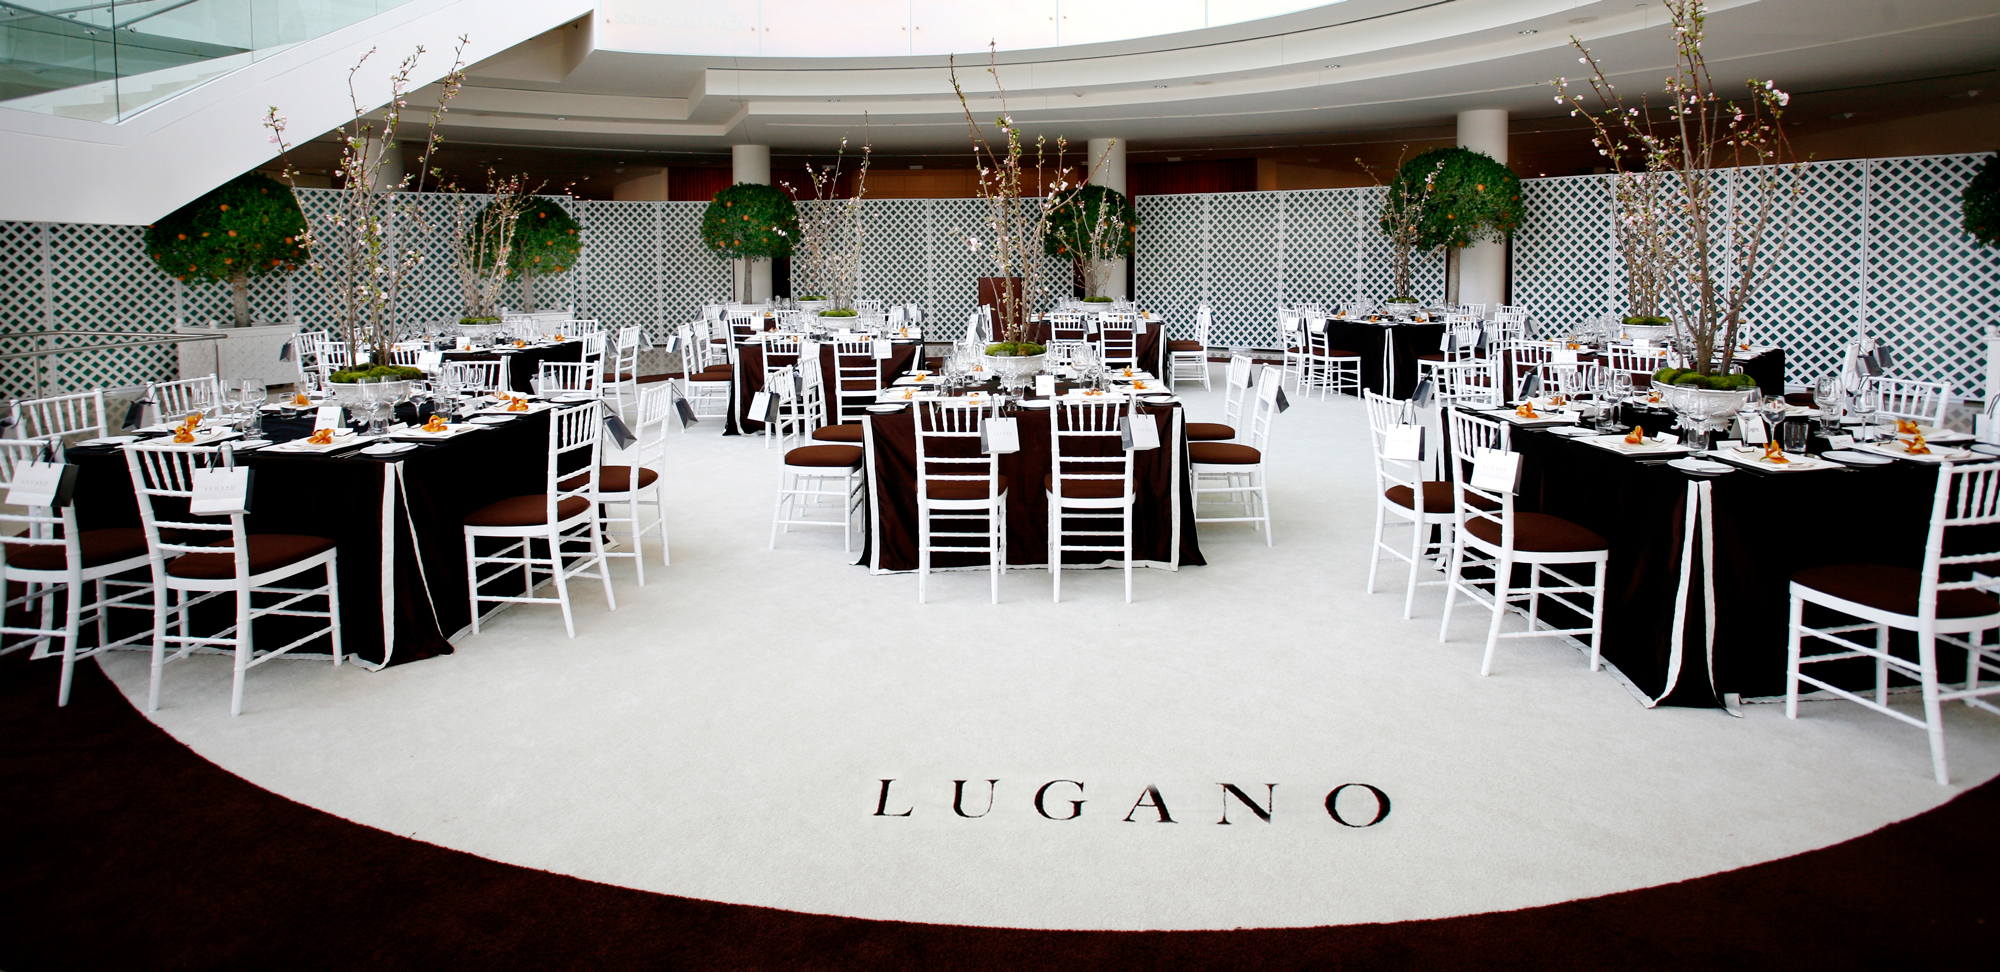 Lugano Diamonds at Segerstrom Center for the Arts - Eventmakers